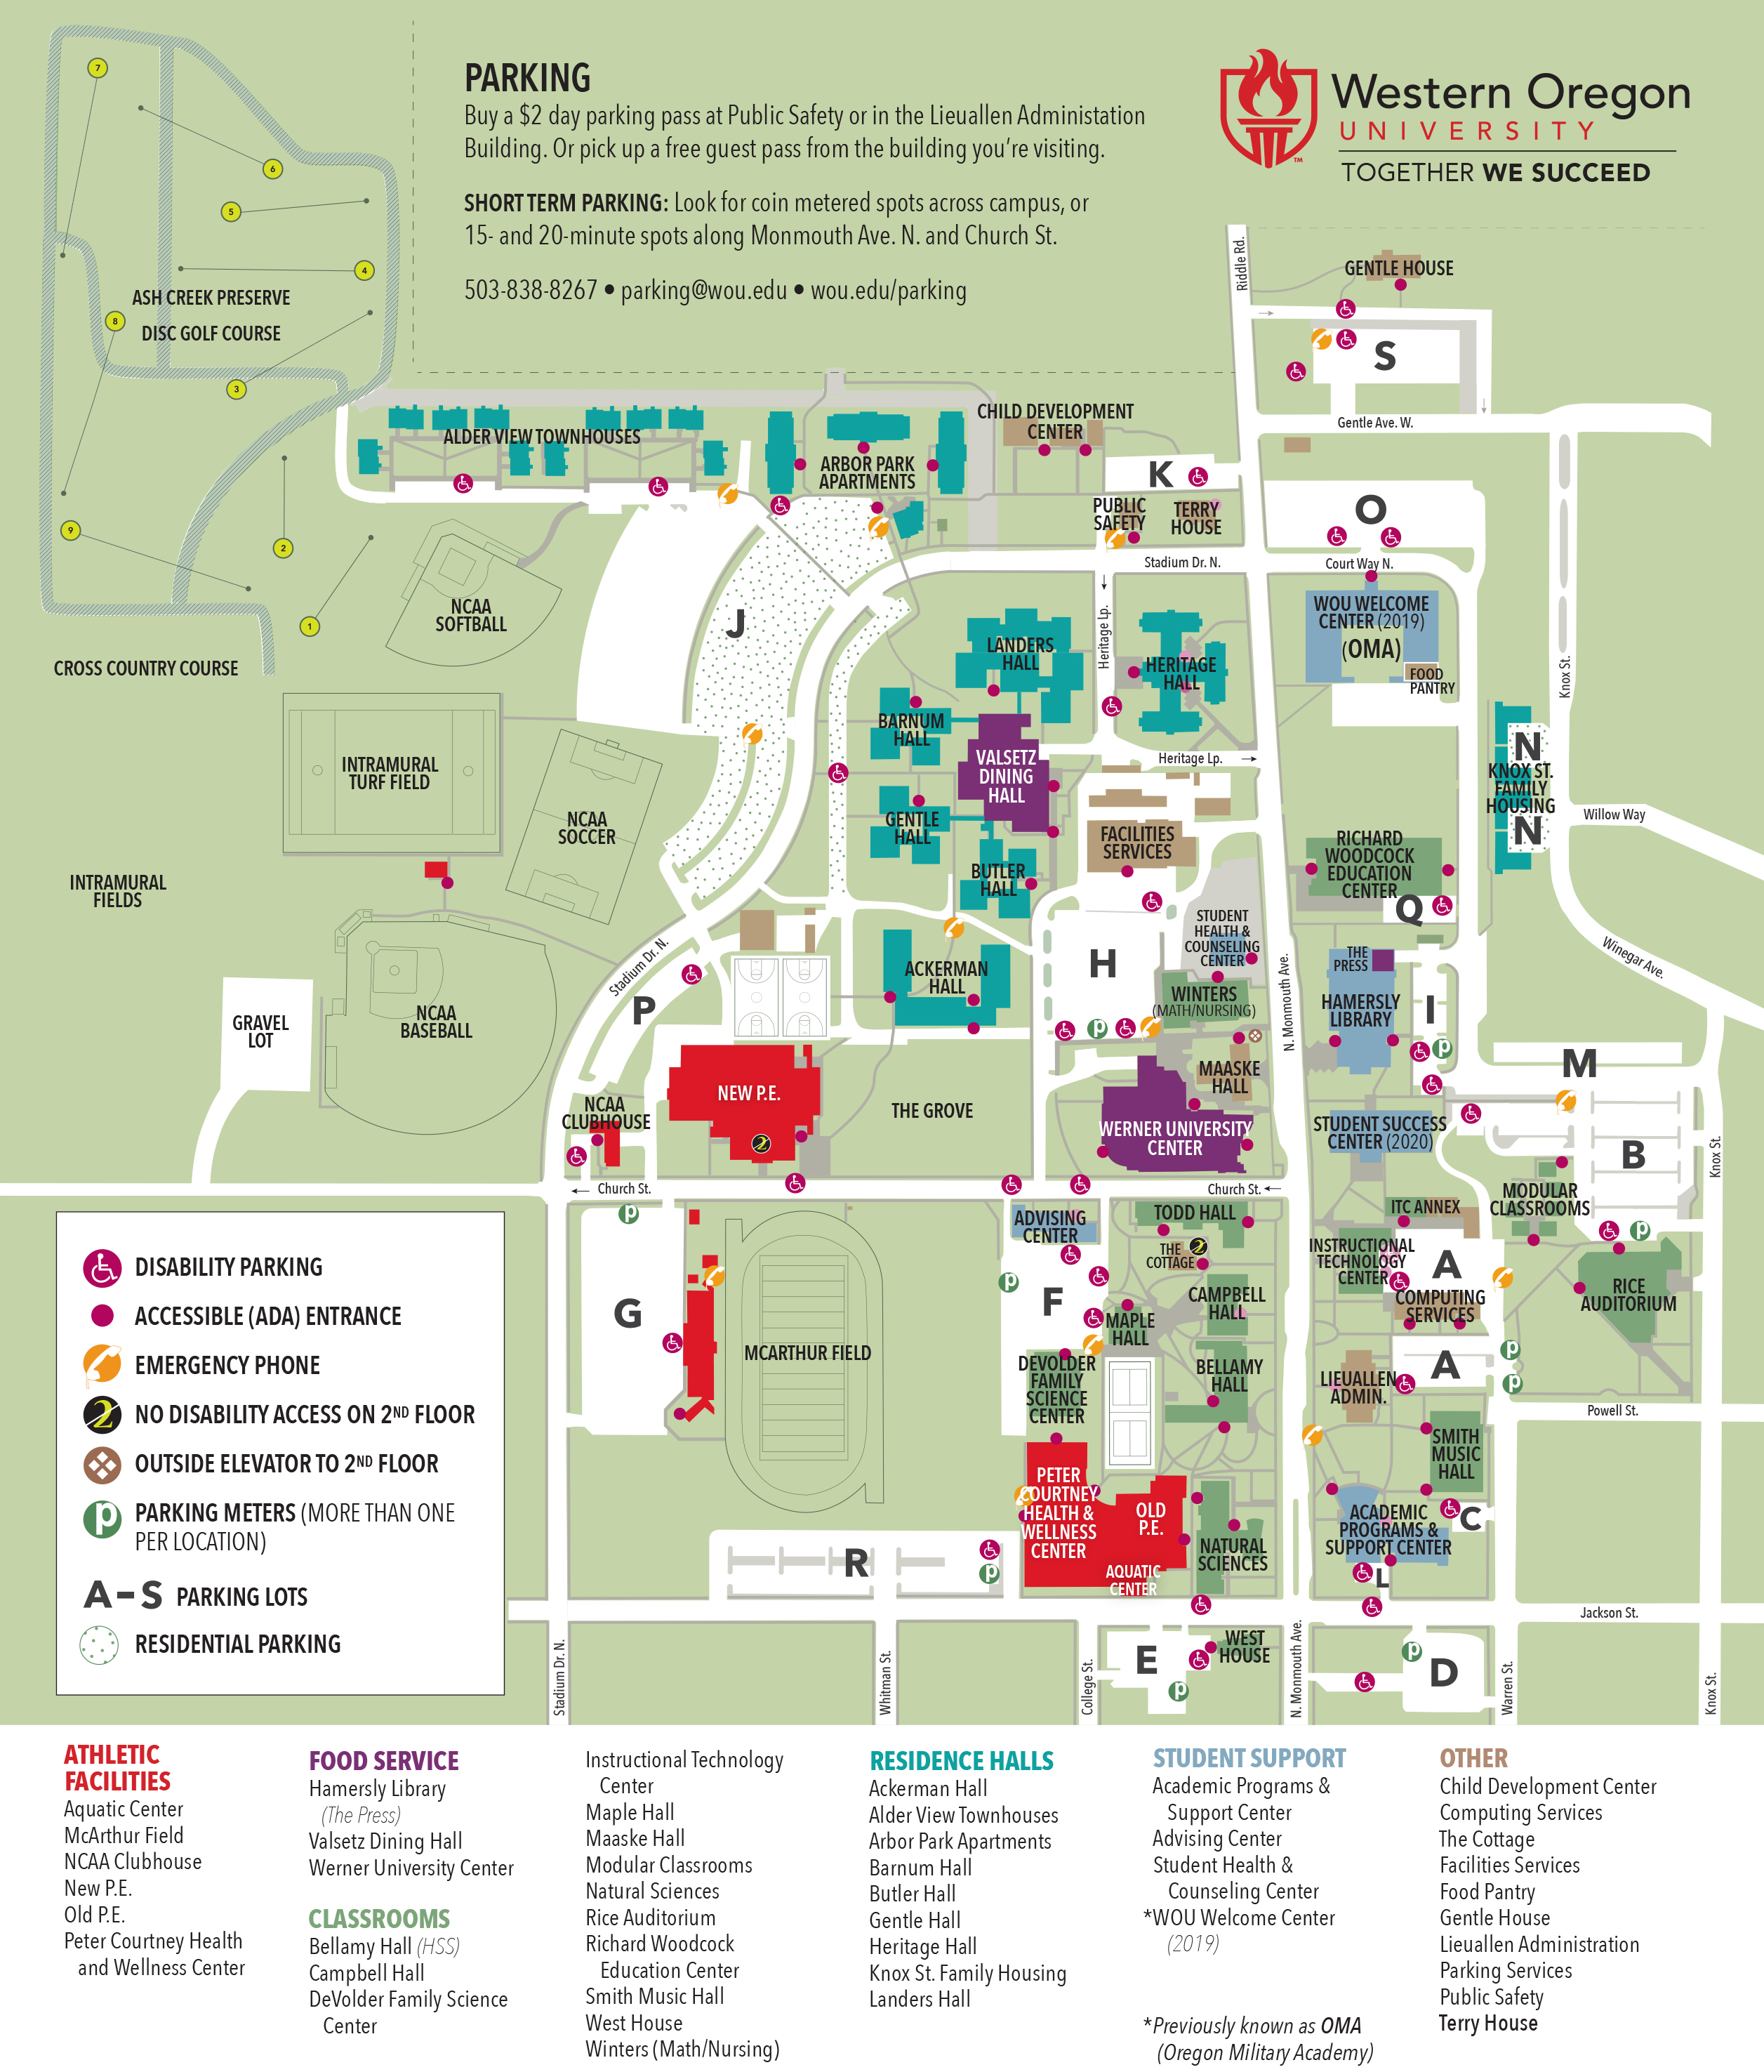 Western Oregon Campus Map.Campus Map Campus Public Safety